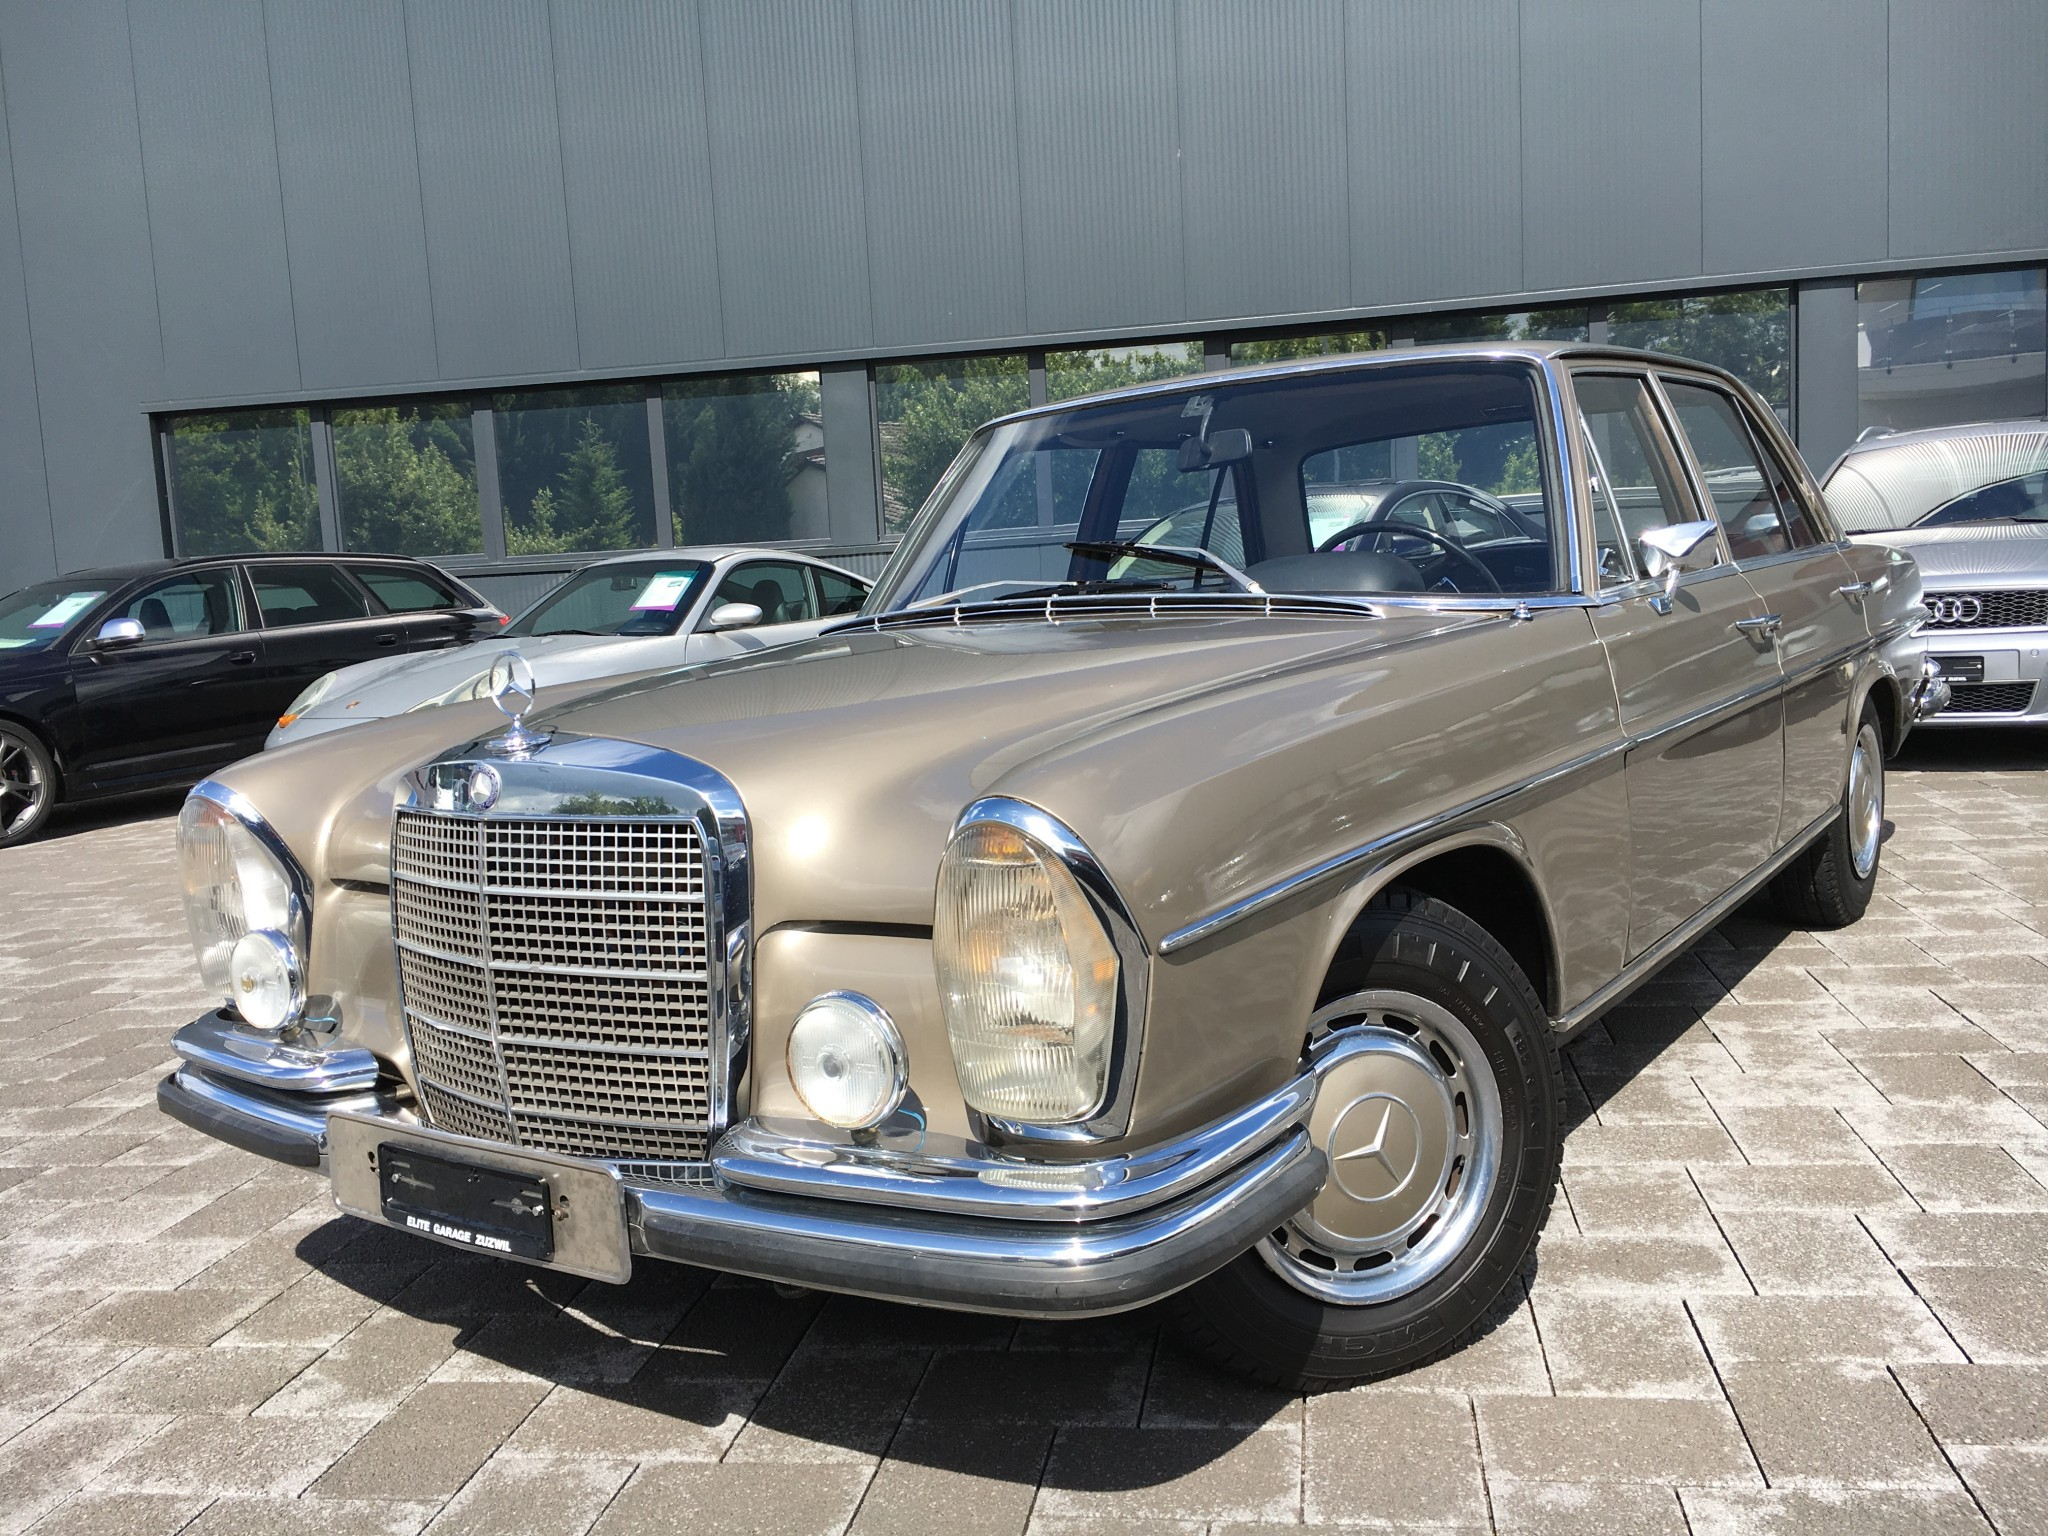 saloon Mercedes-Benz 280 SE 19'990km 11.1968